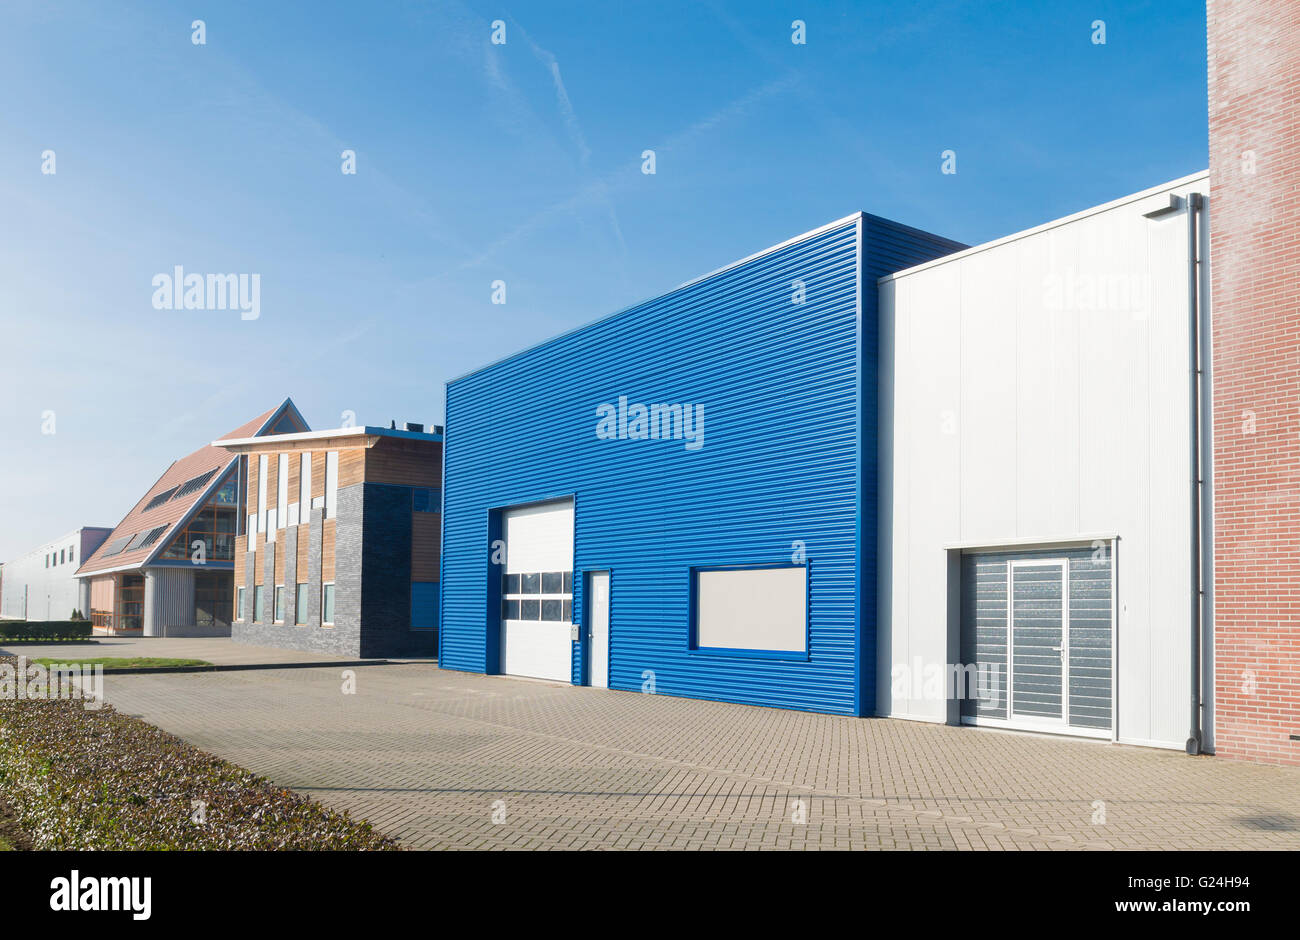 Small blue warehouse exterior stock photo royalty free for Warehouse building design